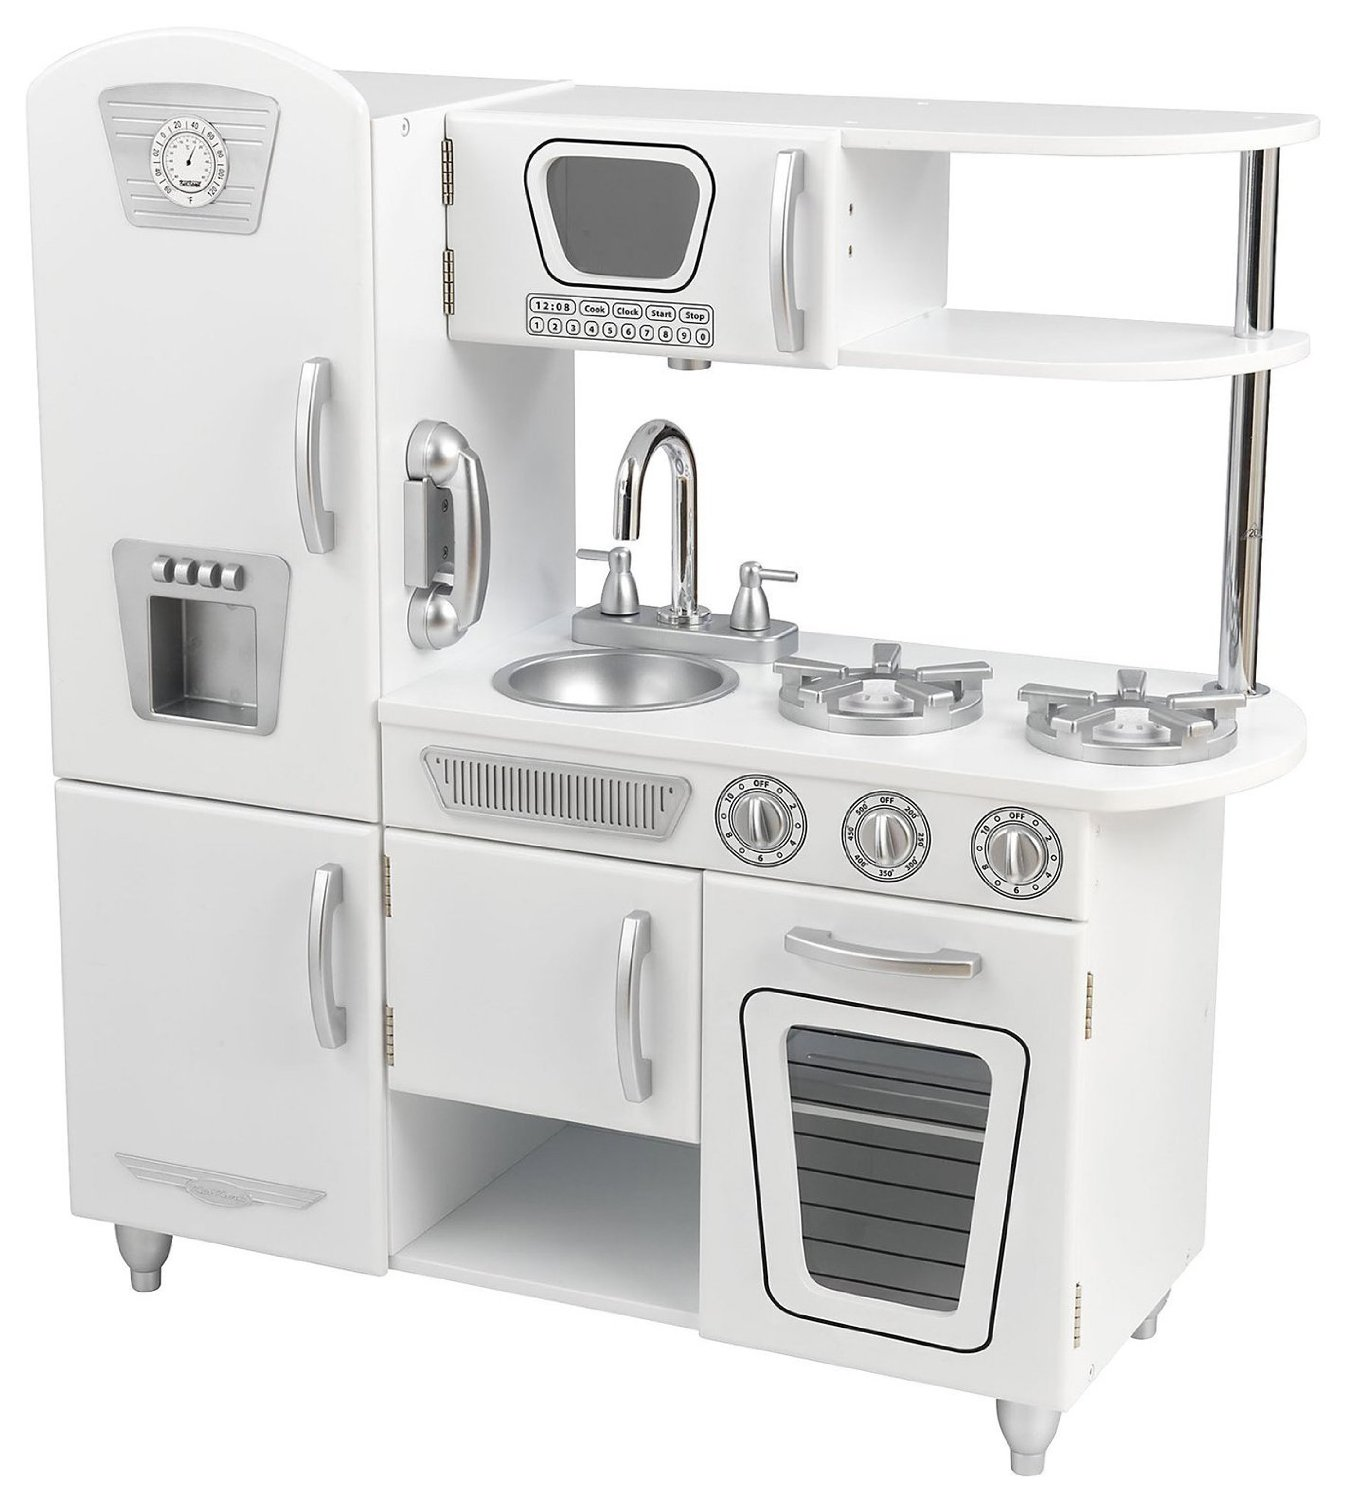 Wonderbox Soggiorno Da Assaporare Kidkraft Retro Kitchen White Home Design Ideas